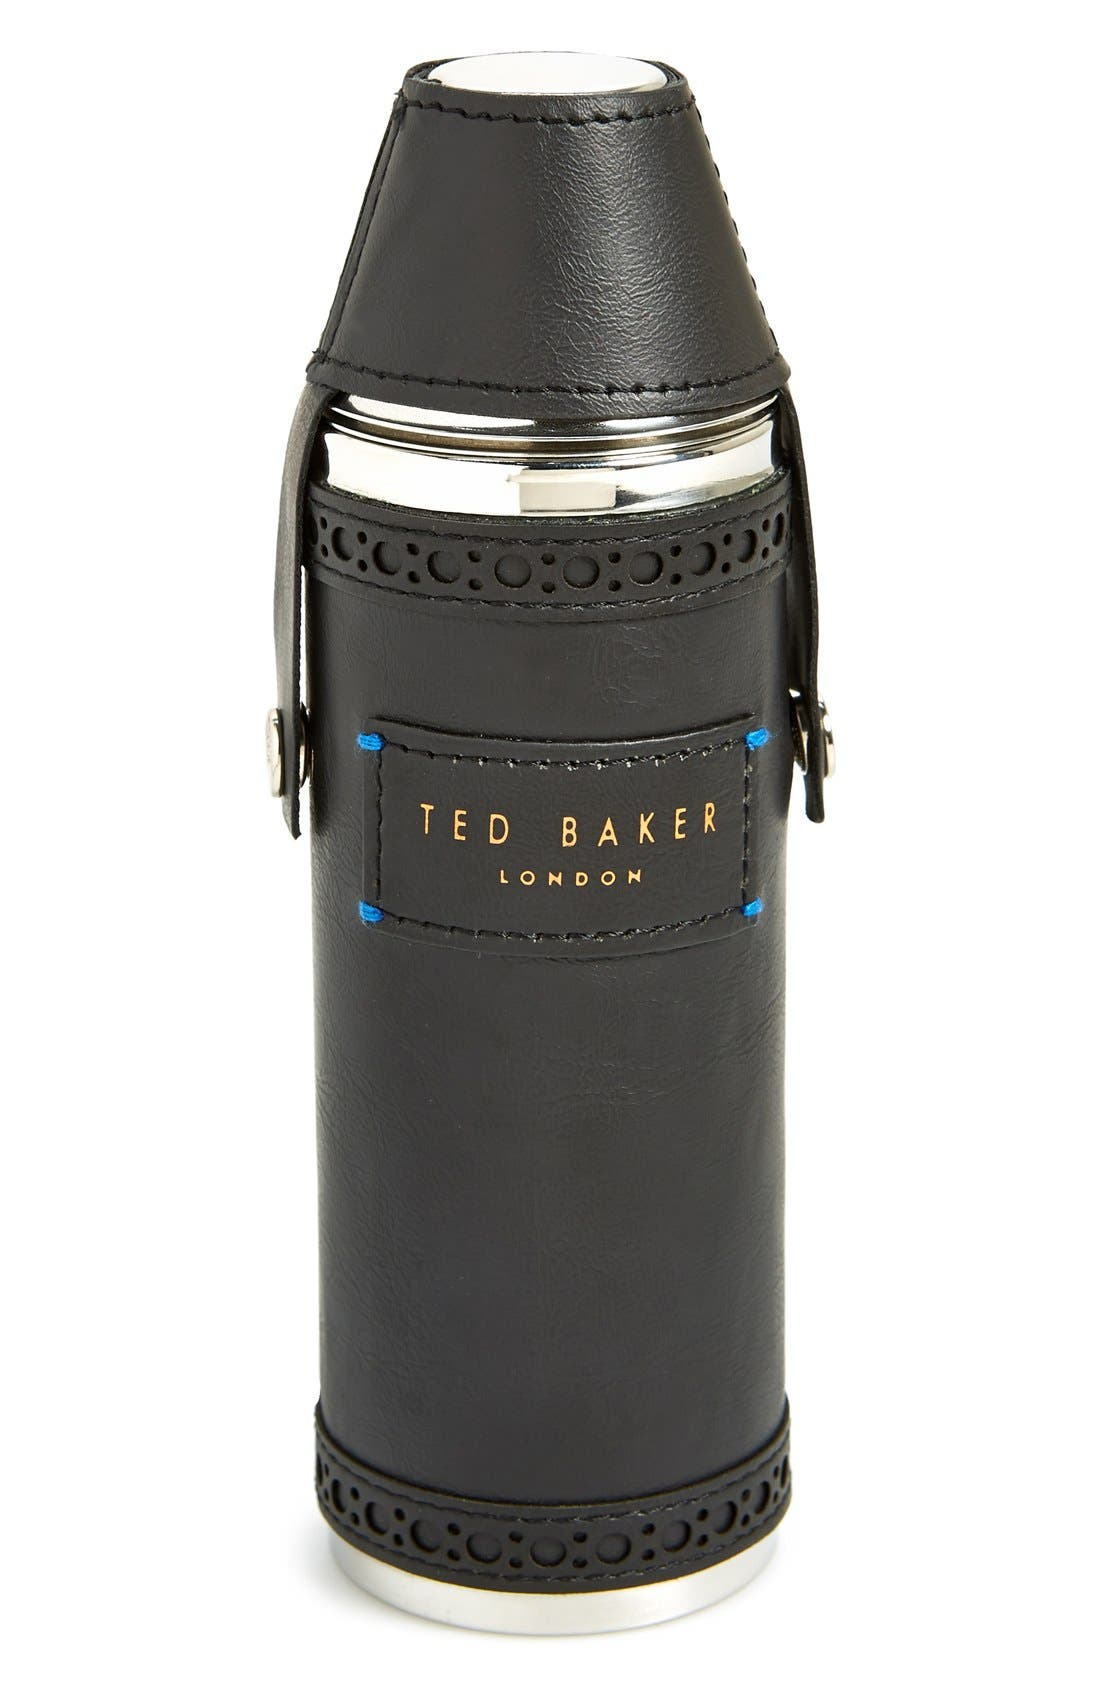 Ted Baker London Hip Flask & Cups